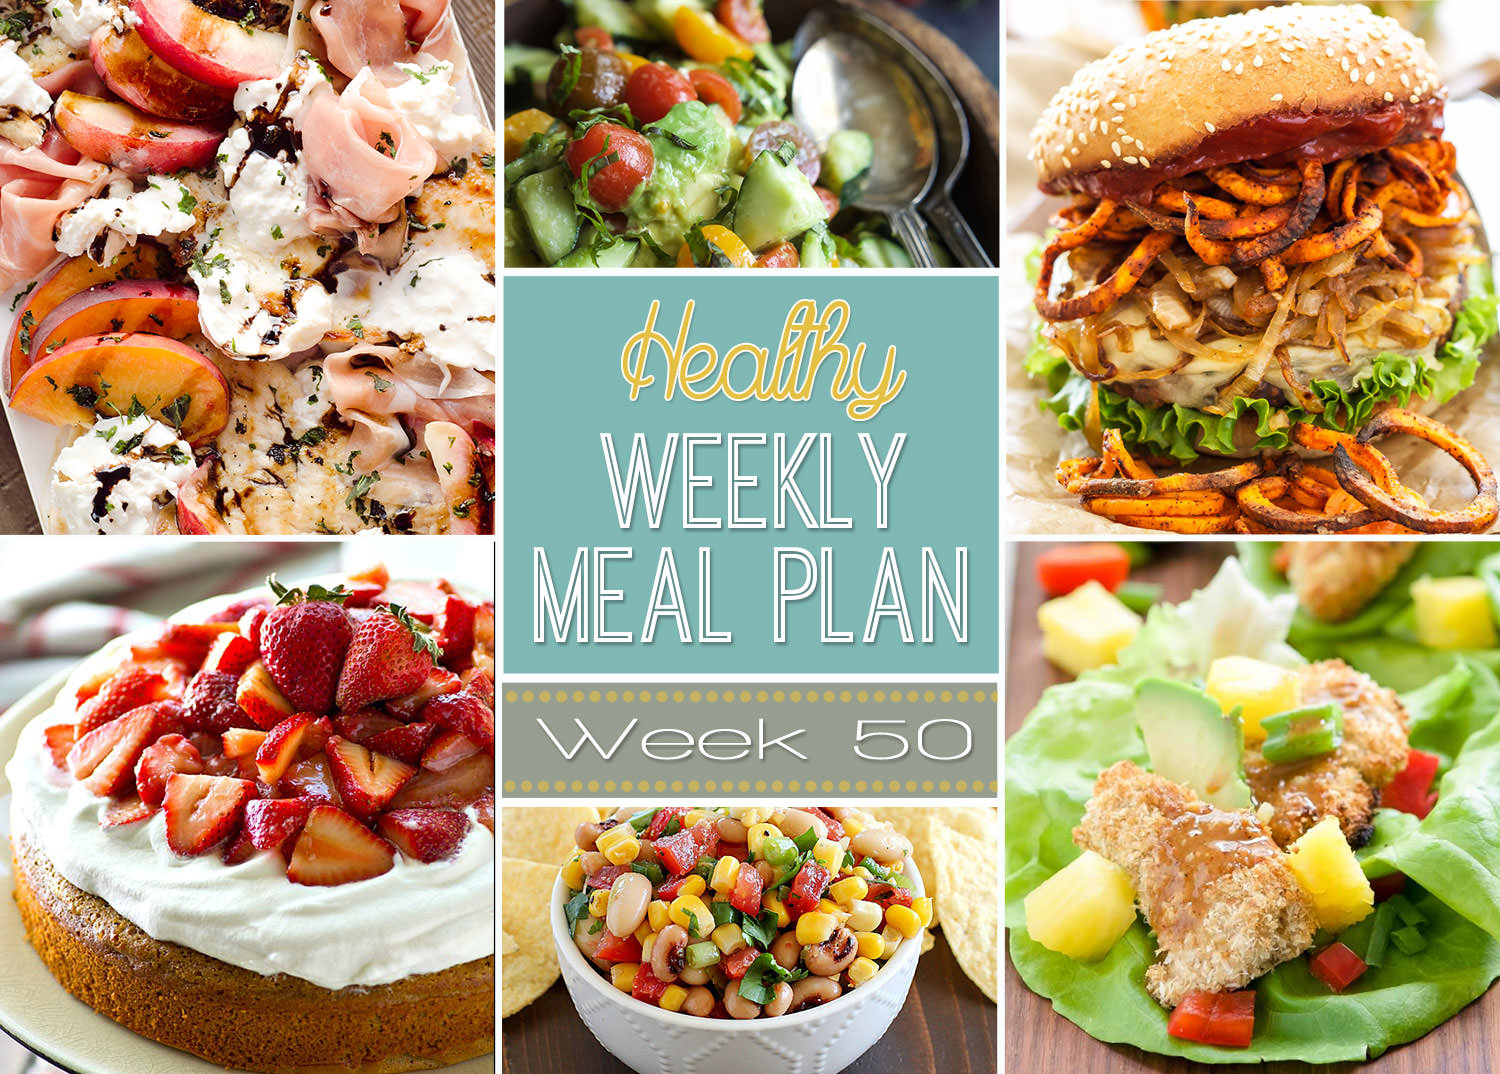 Week 50 is filled with Sante Fe Veggie Burgers, Balsamic Chicken with Peaches and Prosciutto and Strawberry Cheesecake Enchilada Crepes are more a healthy dessert for breakfast!